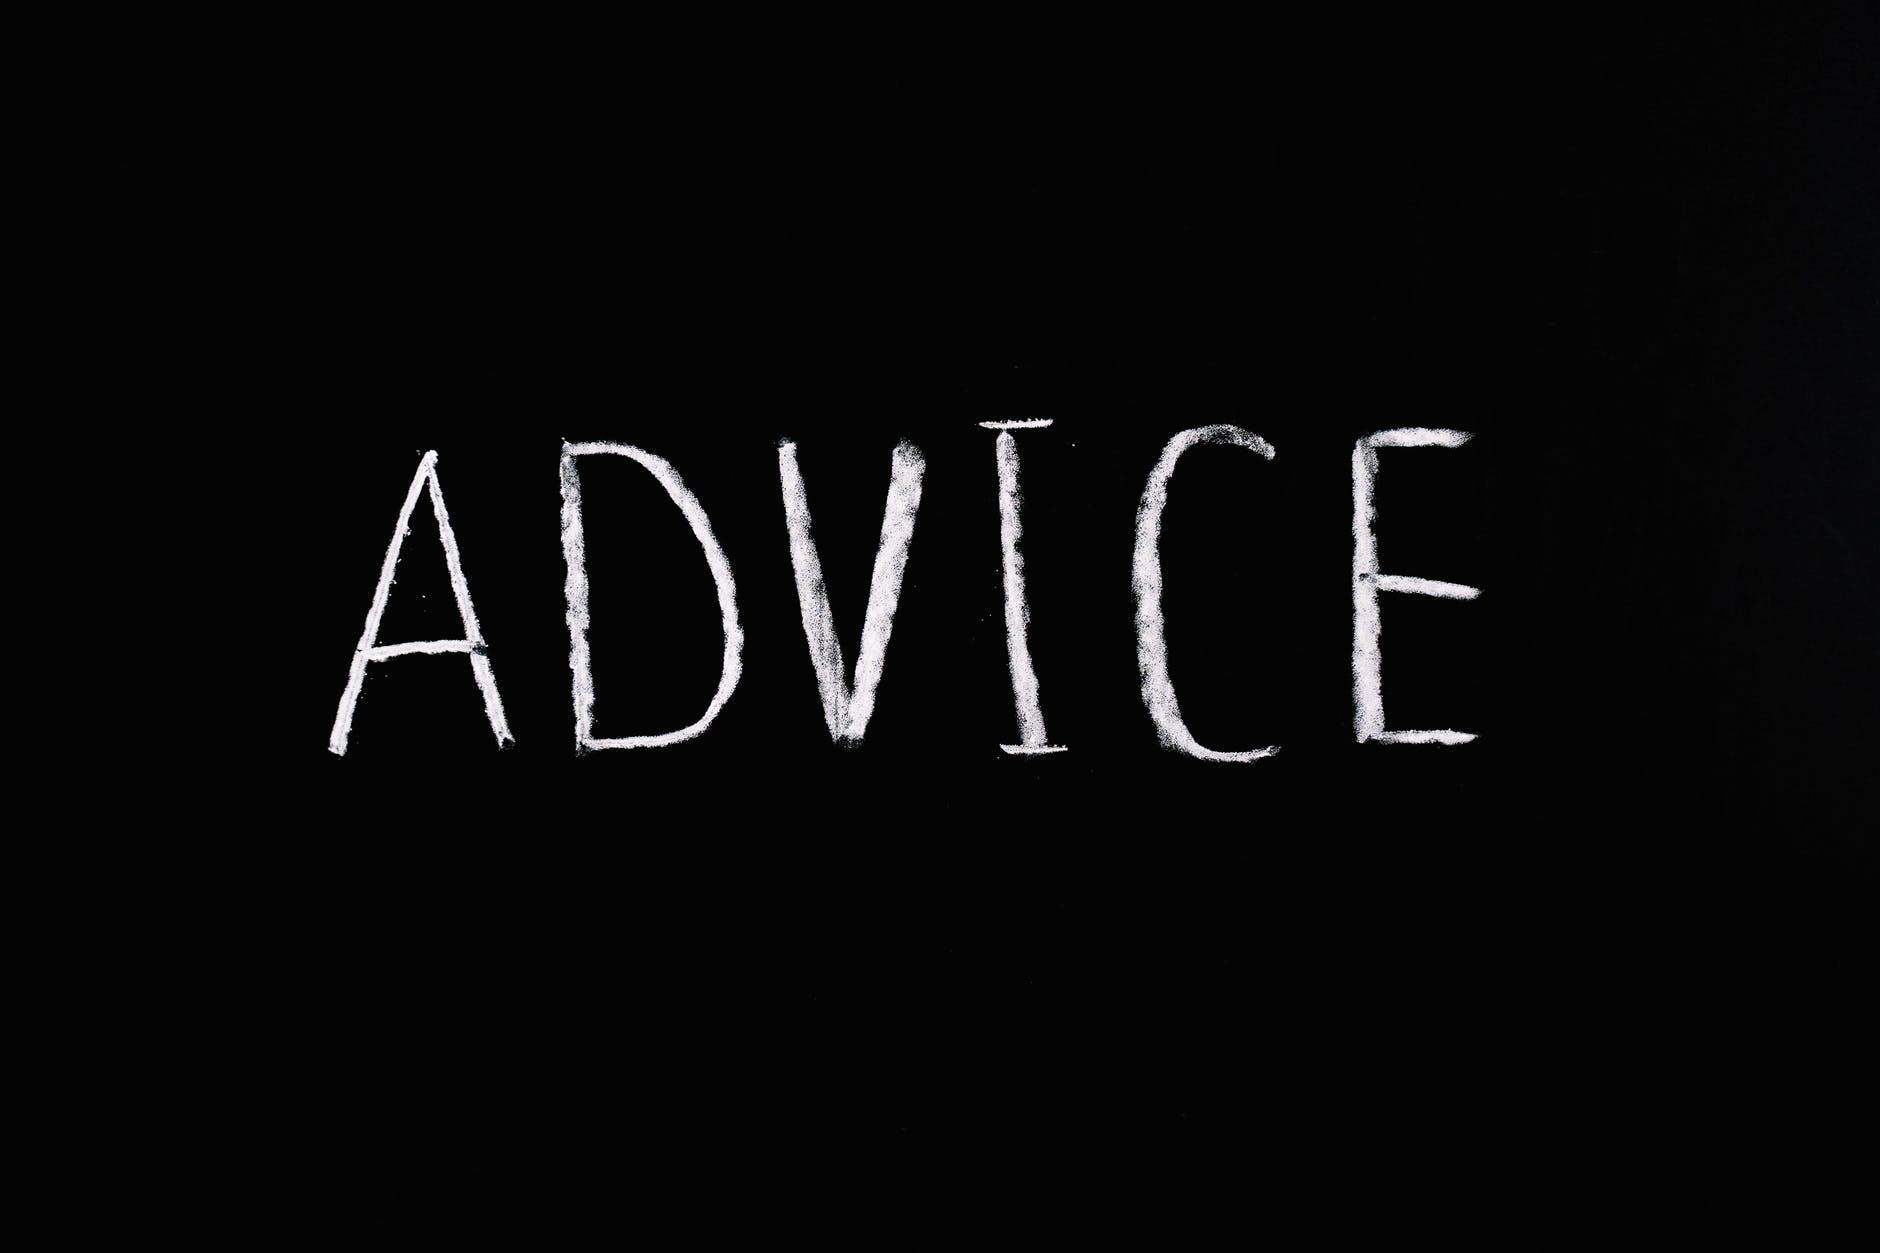 advice lettering text on black background